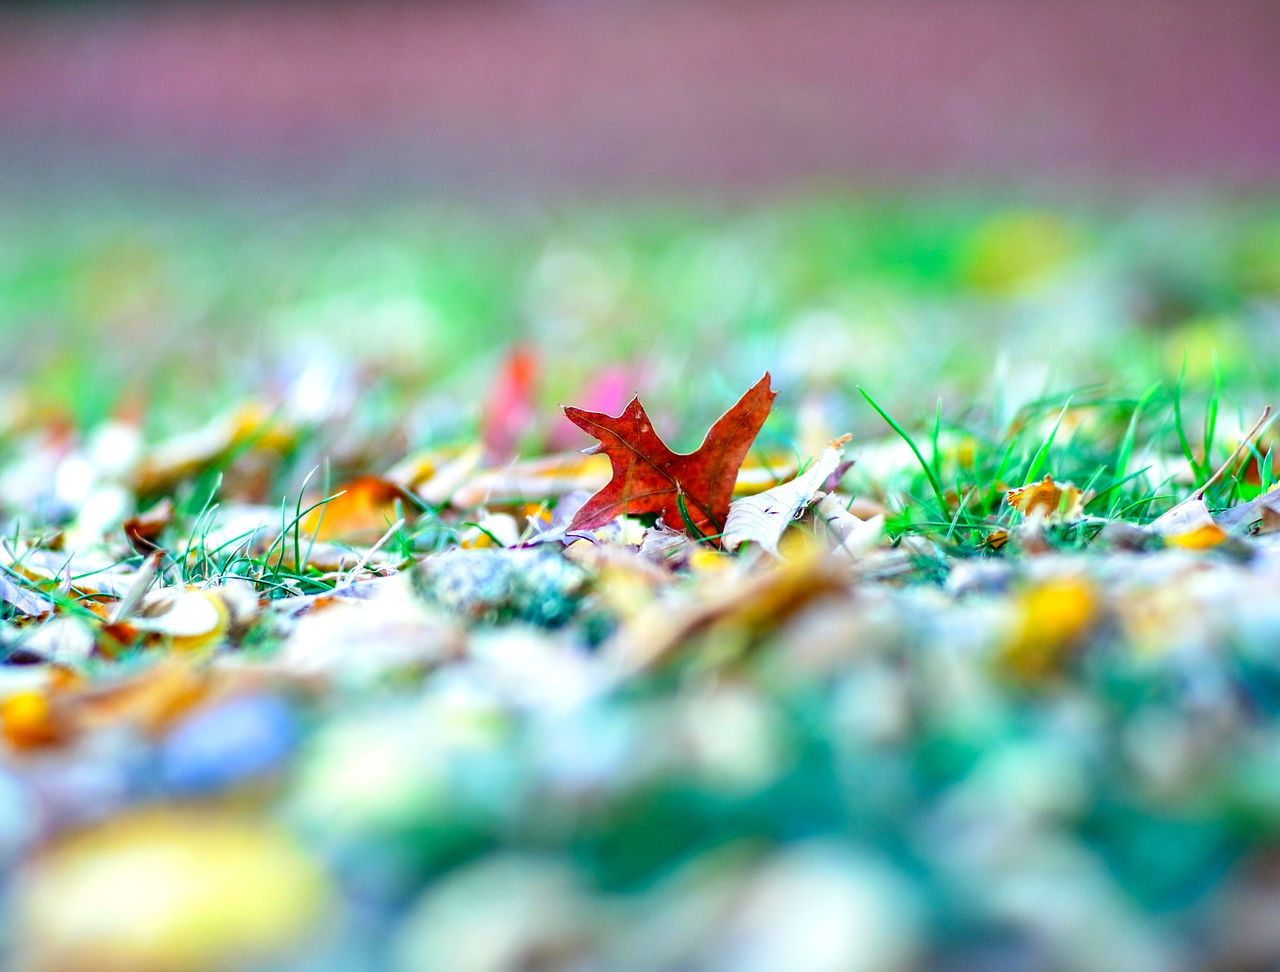 CLOSE-UP OF MAPLE LEAVES ON LAND